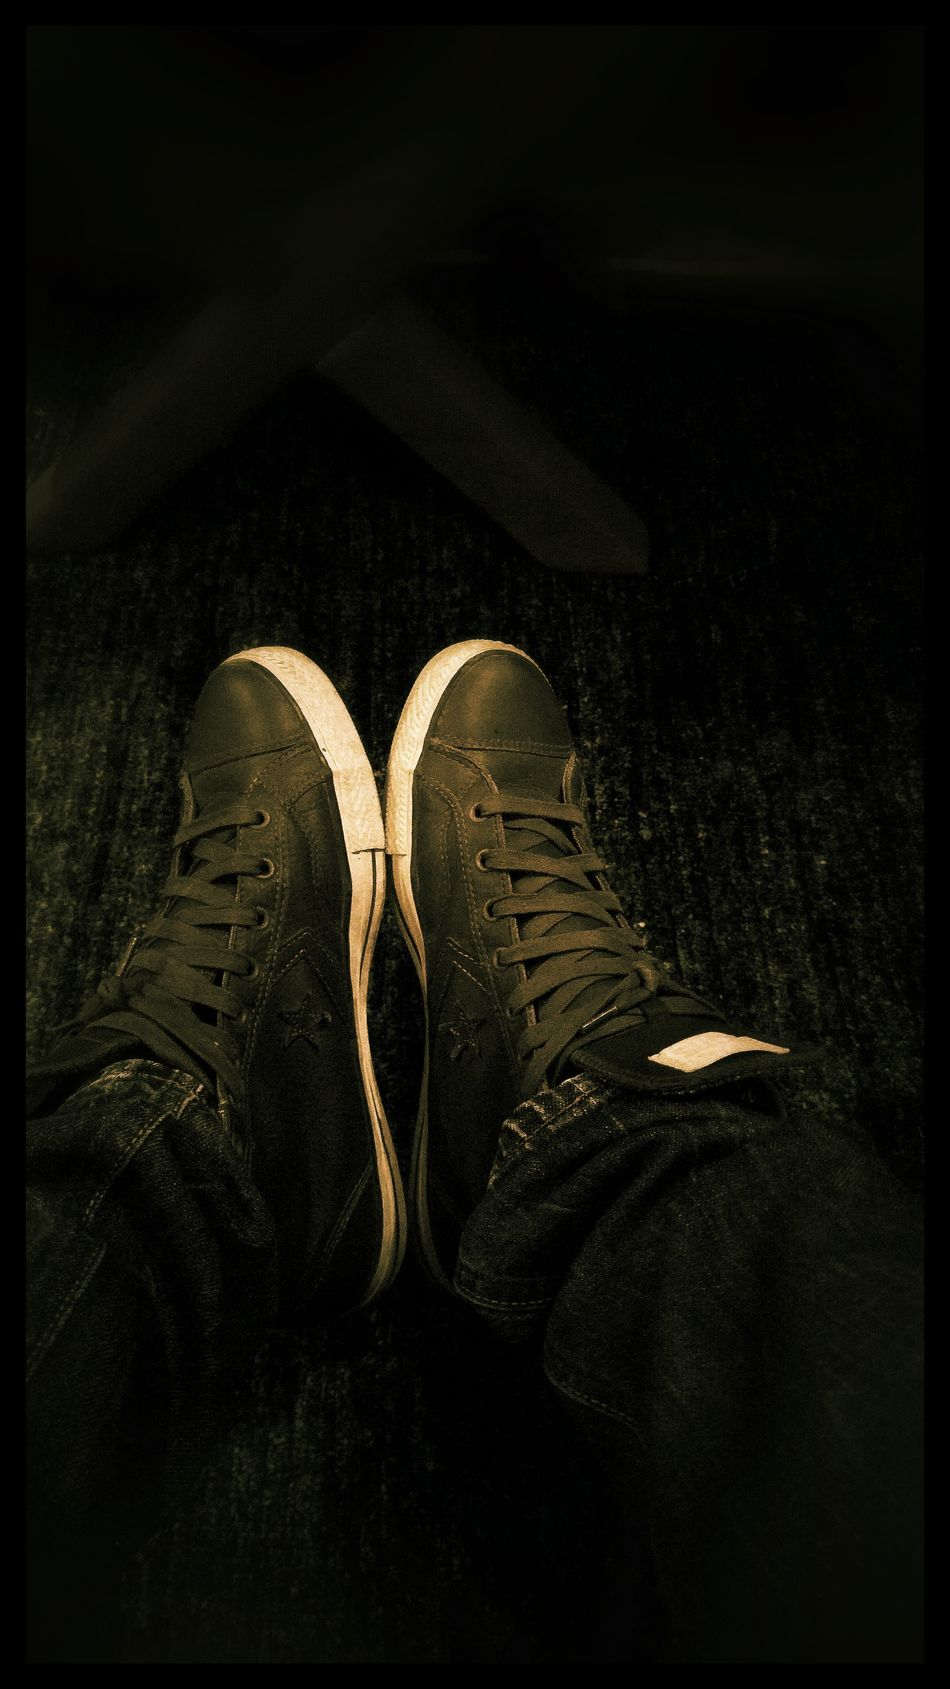 Shadow Shoe All Star All Star Shoes Leather Light Mans Two Pair Foot